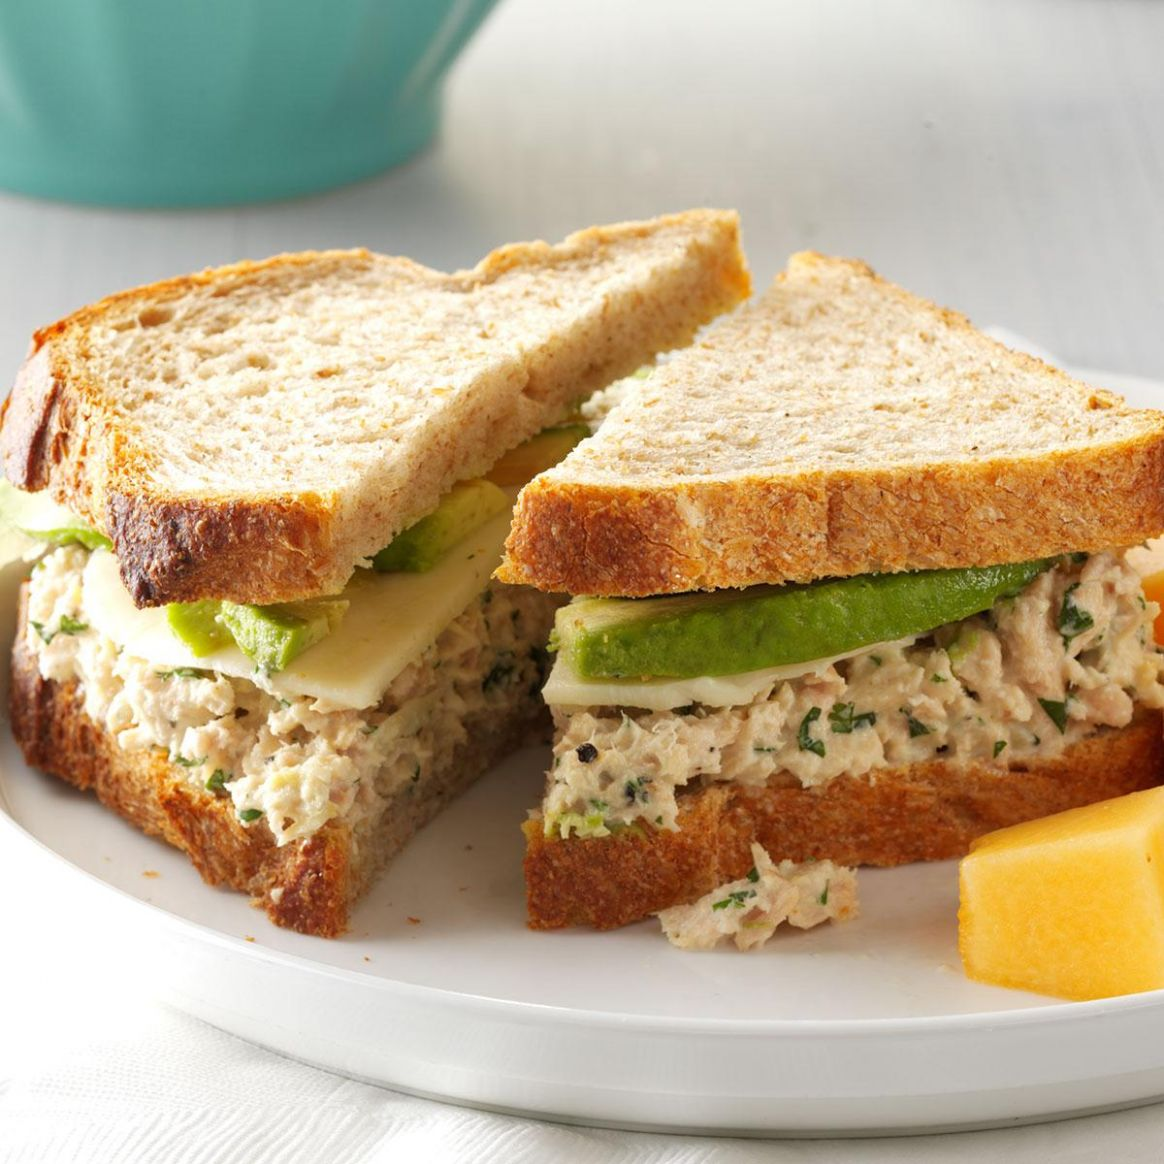 Cilantro-Avocado Tuna Salad Sandwiches - Sandwich Recipes Taste Of Home